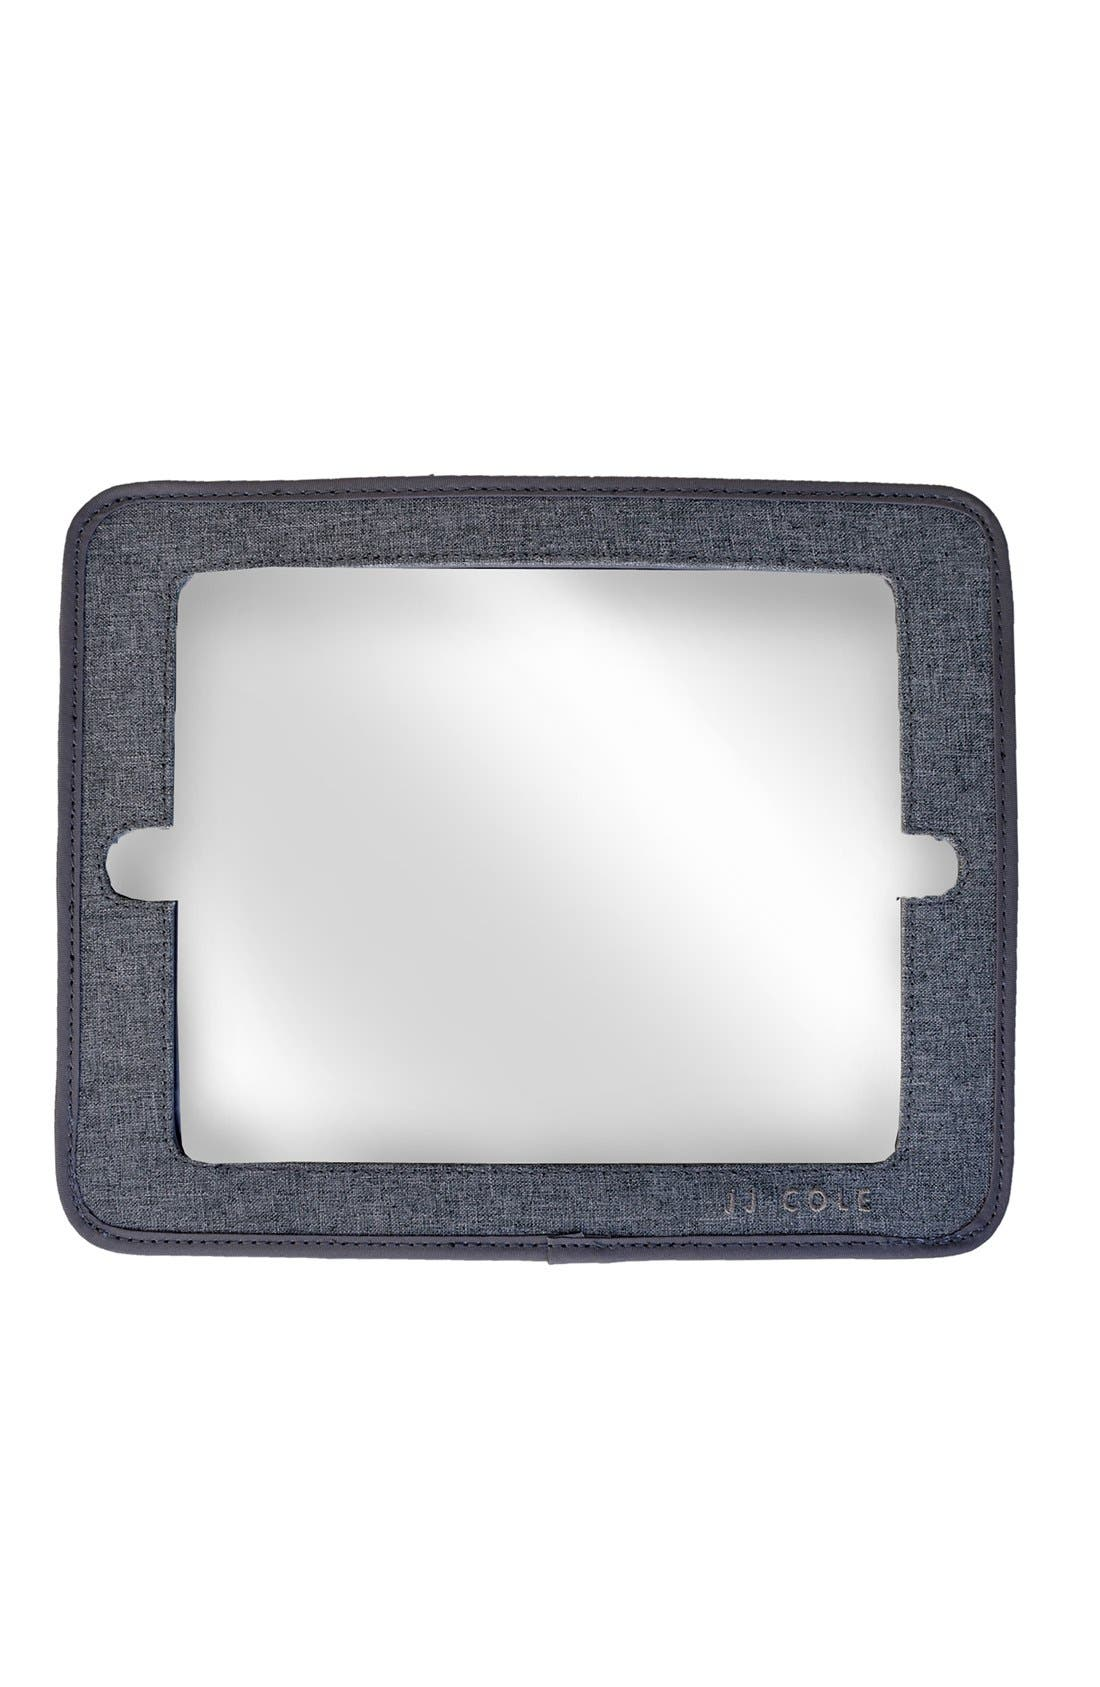 2-in-1 Mirror,                             Main thumbnail 1, color,                             Gray Heather